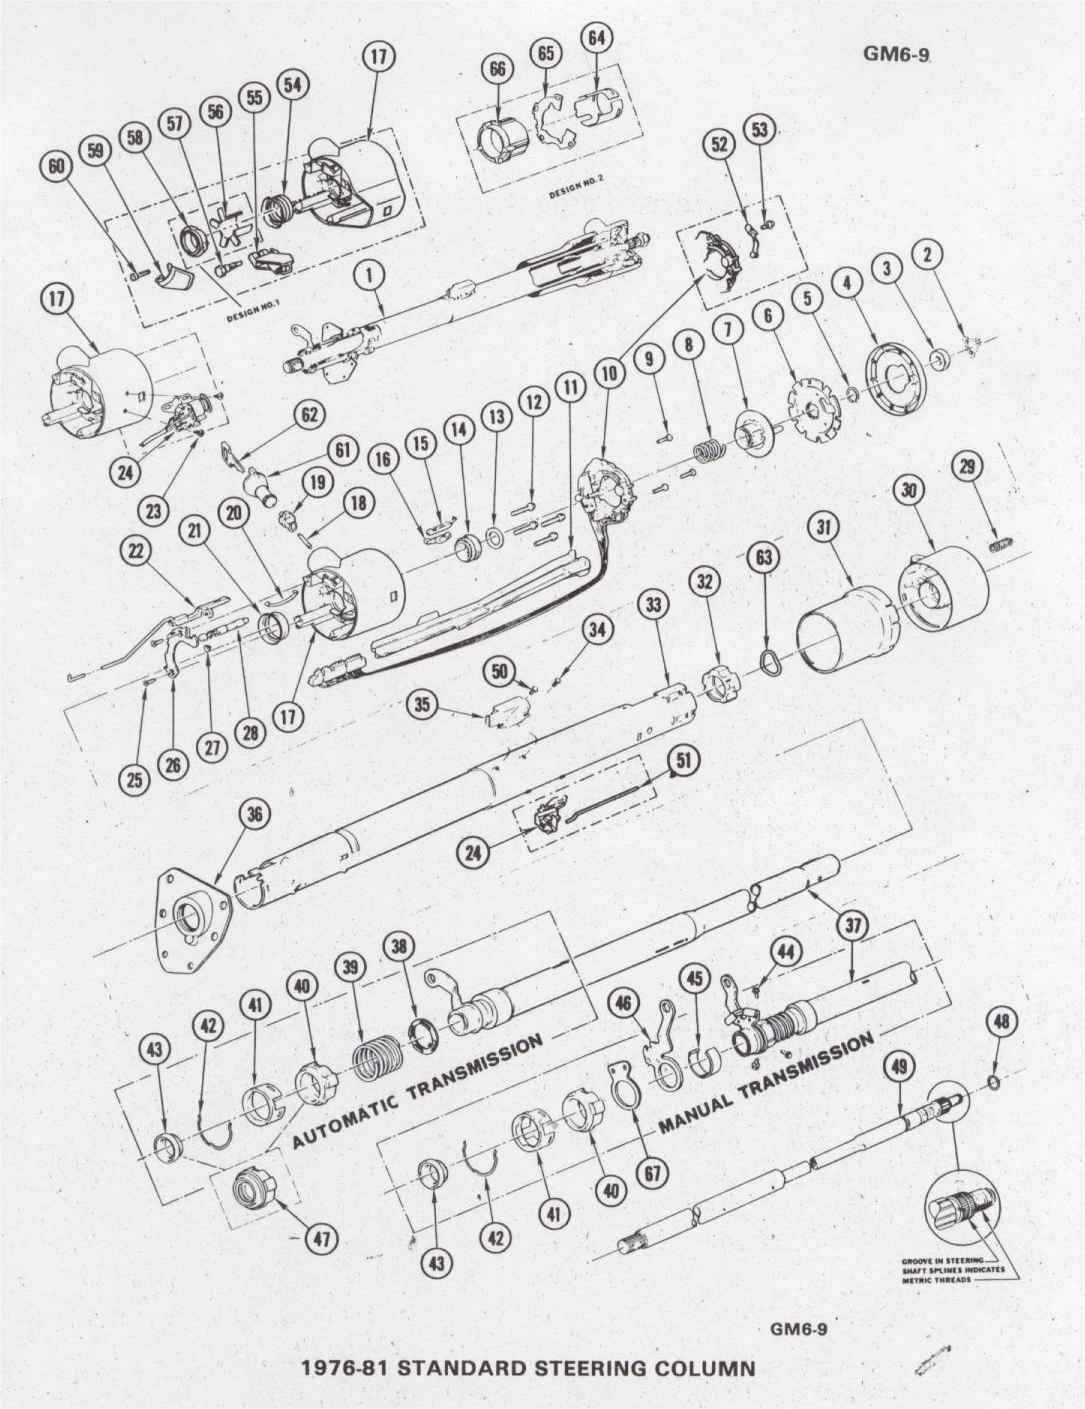 1976 corvette steering column diagram